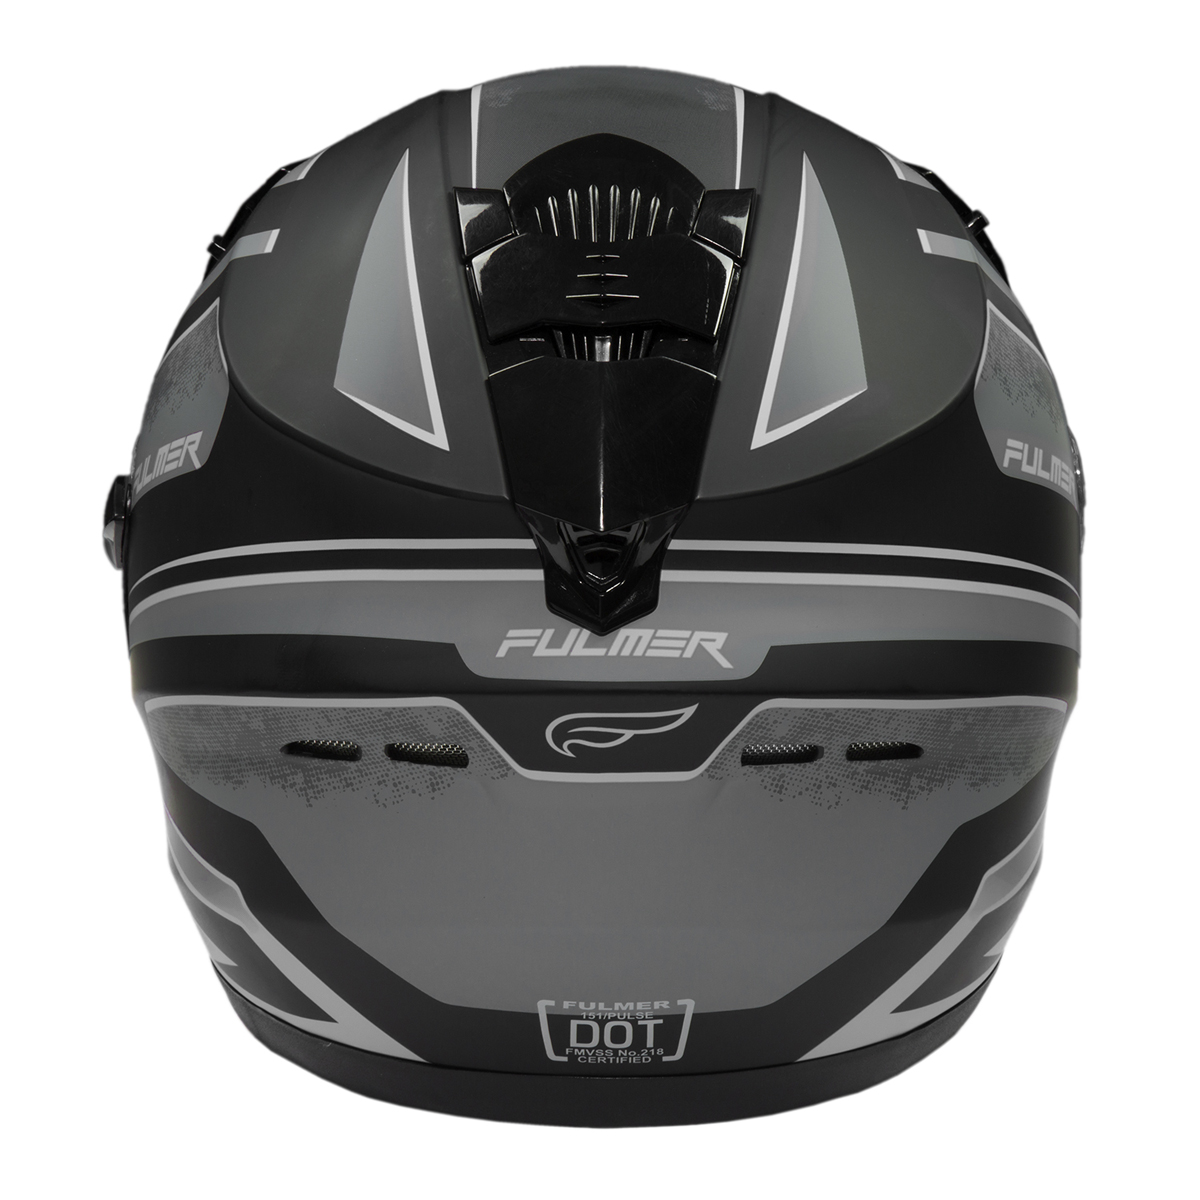 Fulmer-Adult-Full-Face-Motorcycle-Helmet-151-Pulse-DOT-Approved-Street-Bike thumbnail 5